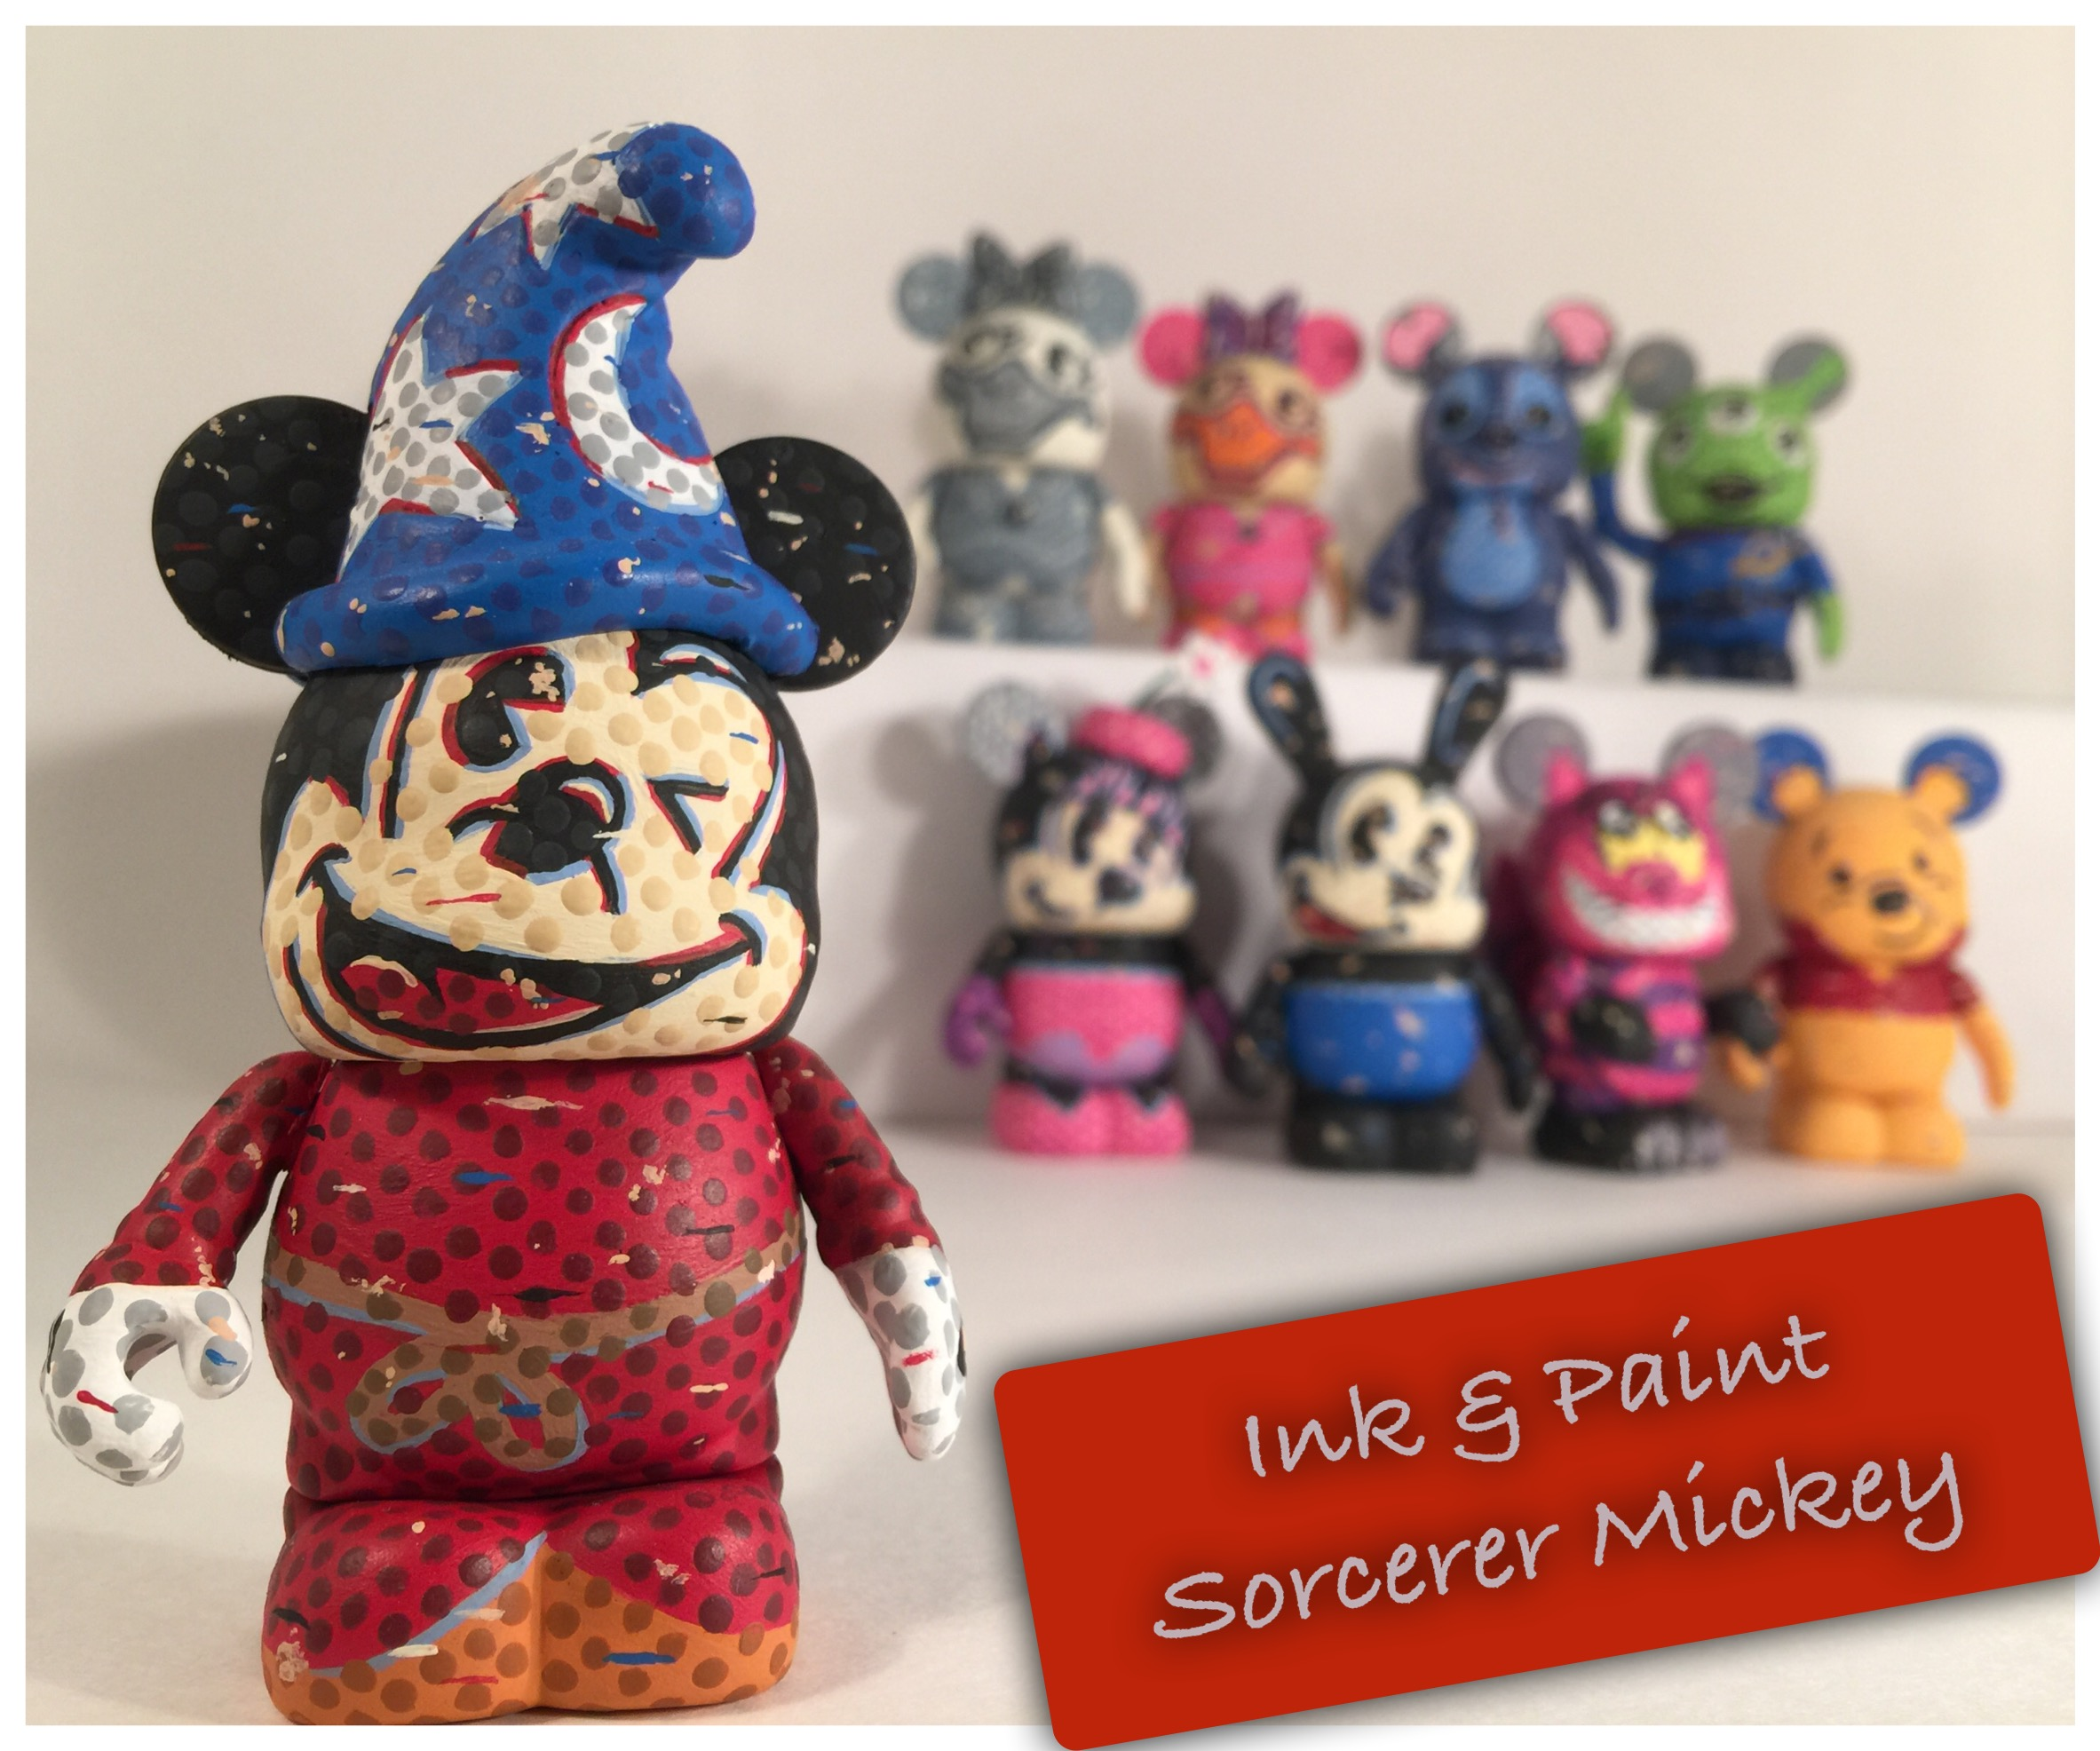 Custom Corner: Ink & Paint Series